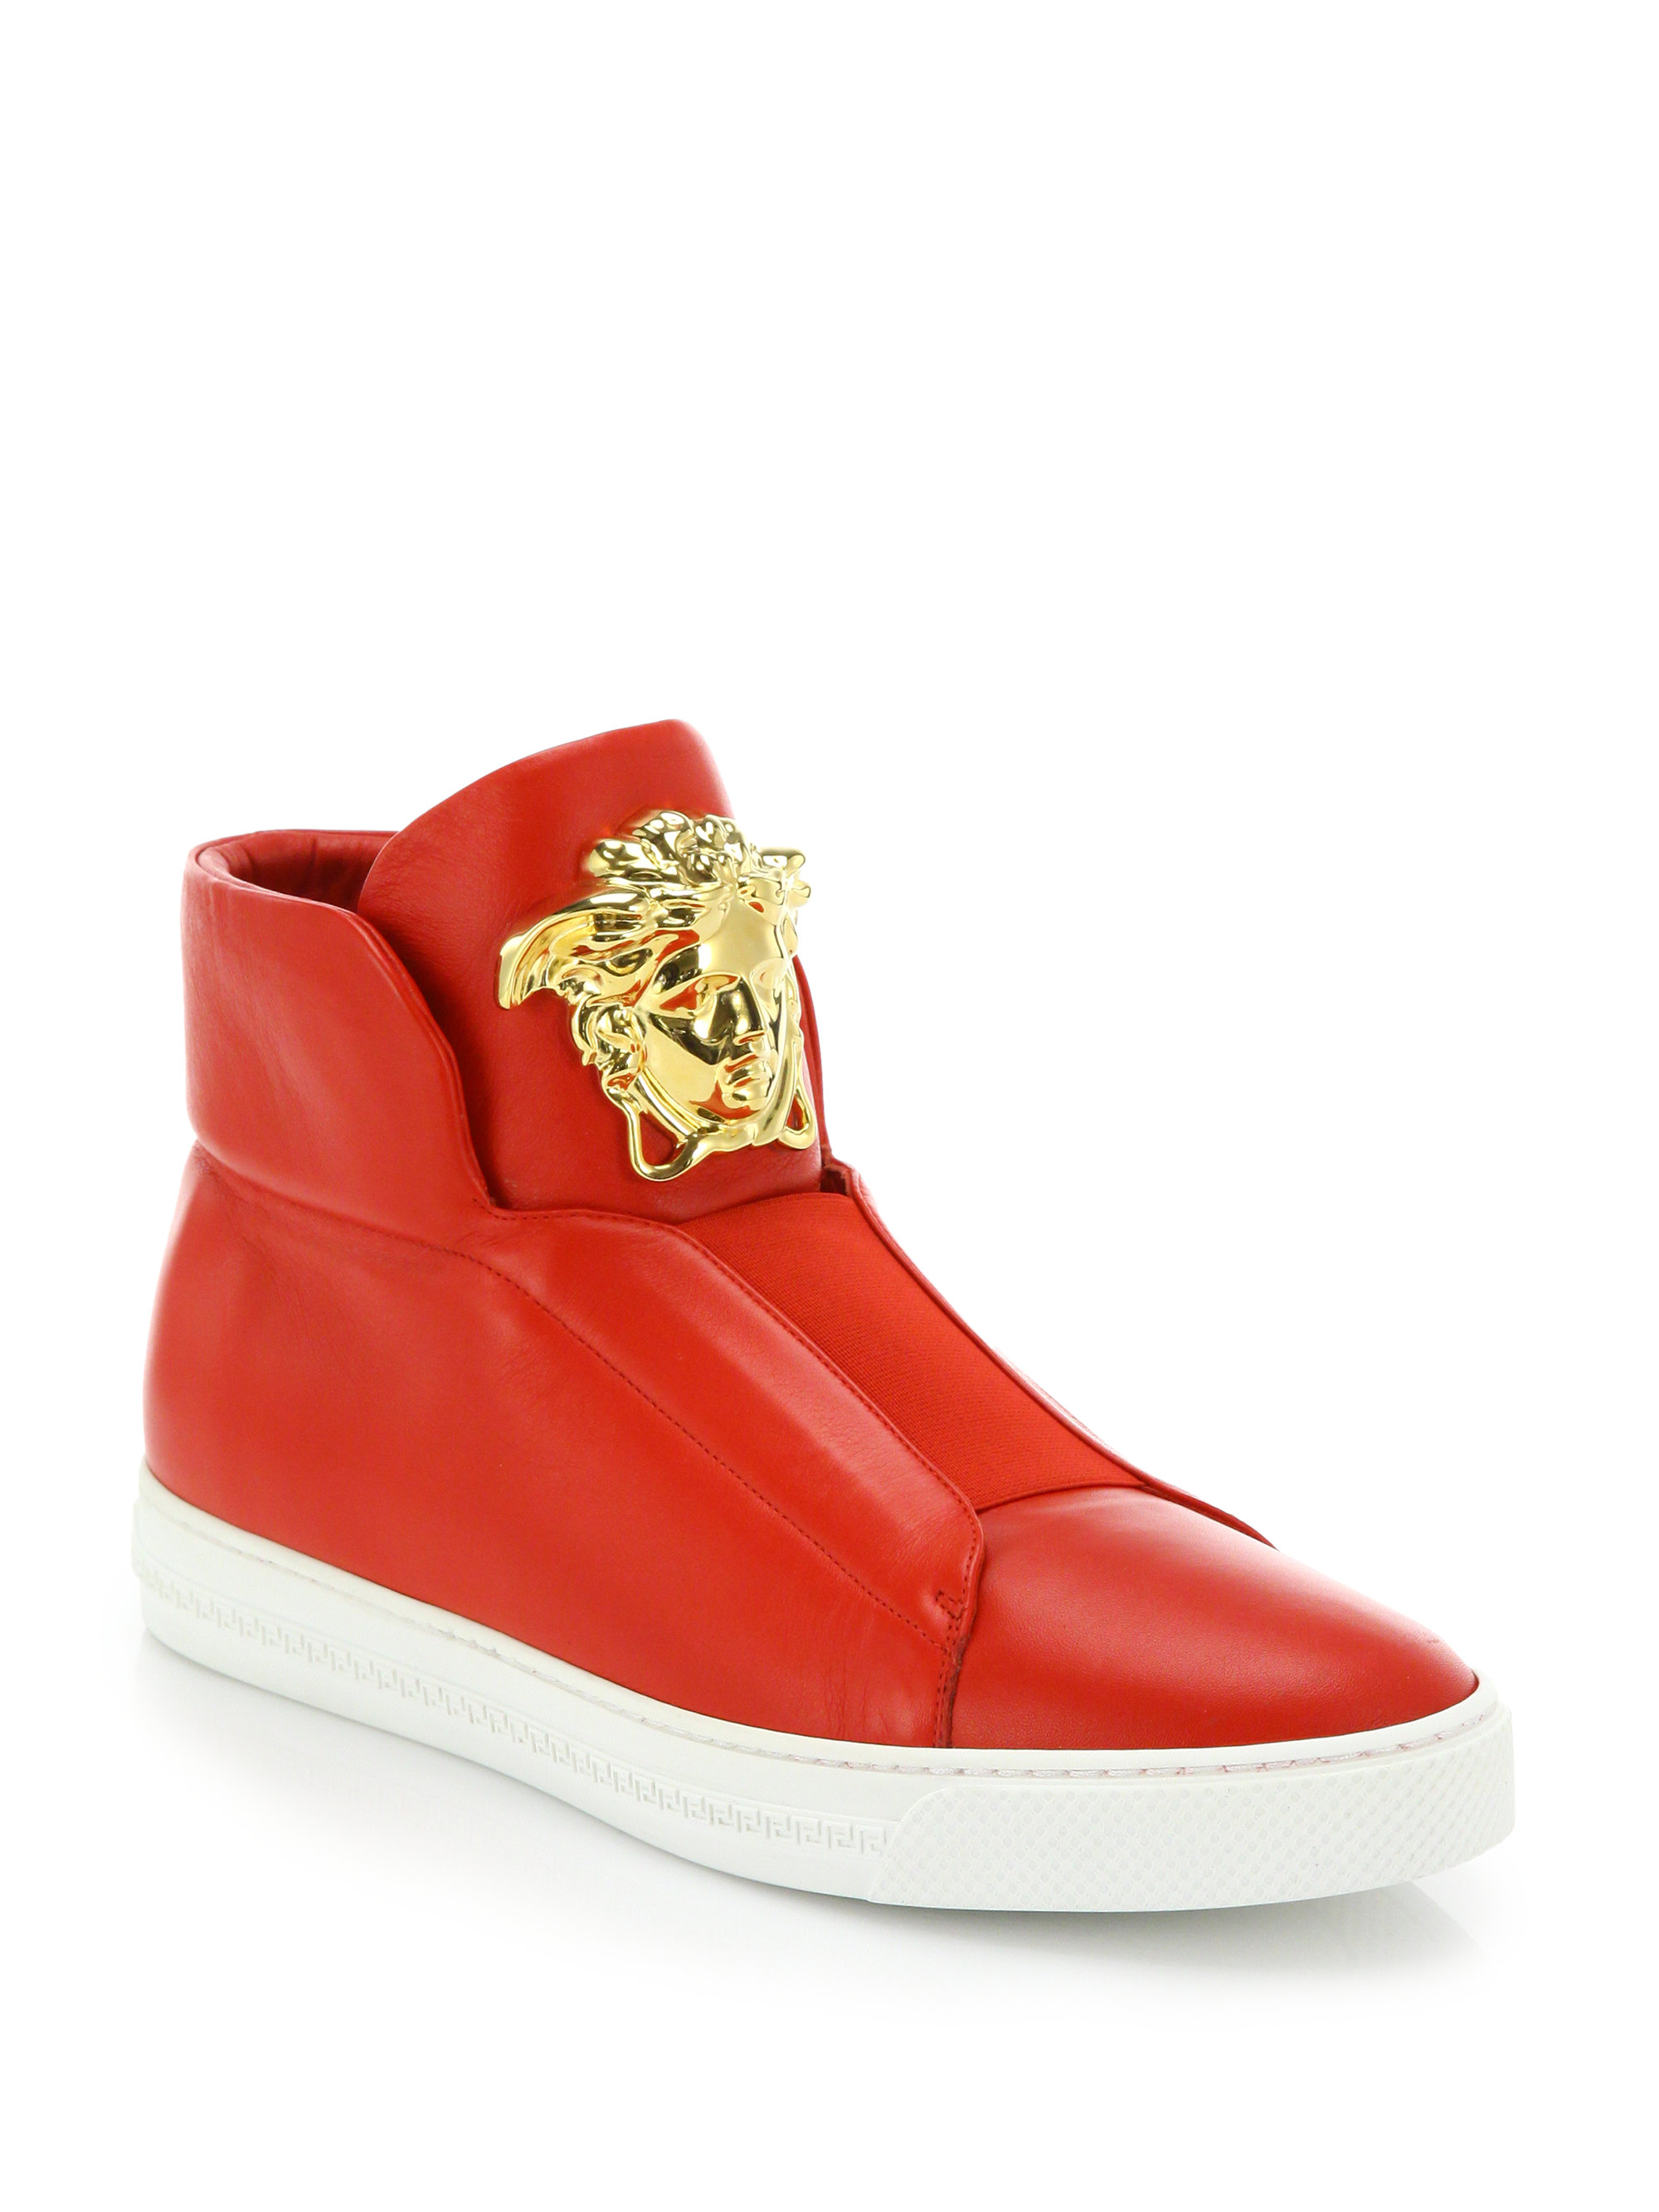 Lyst - Versace First Idol Leather High-top Sneakers in Red ...